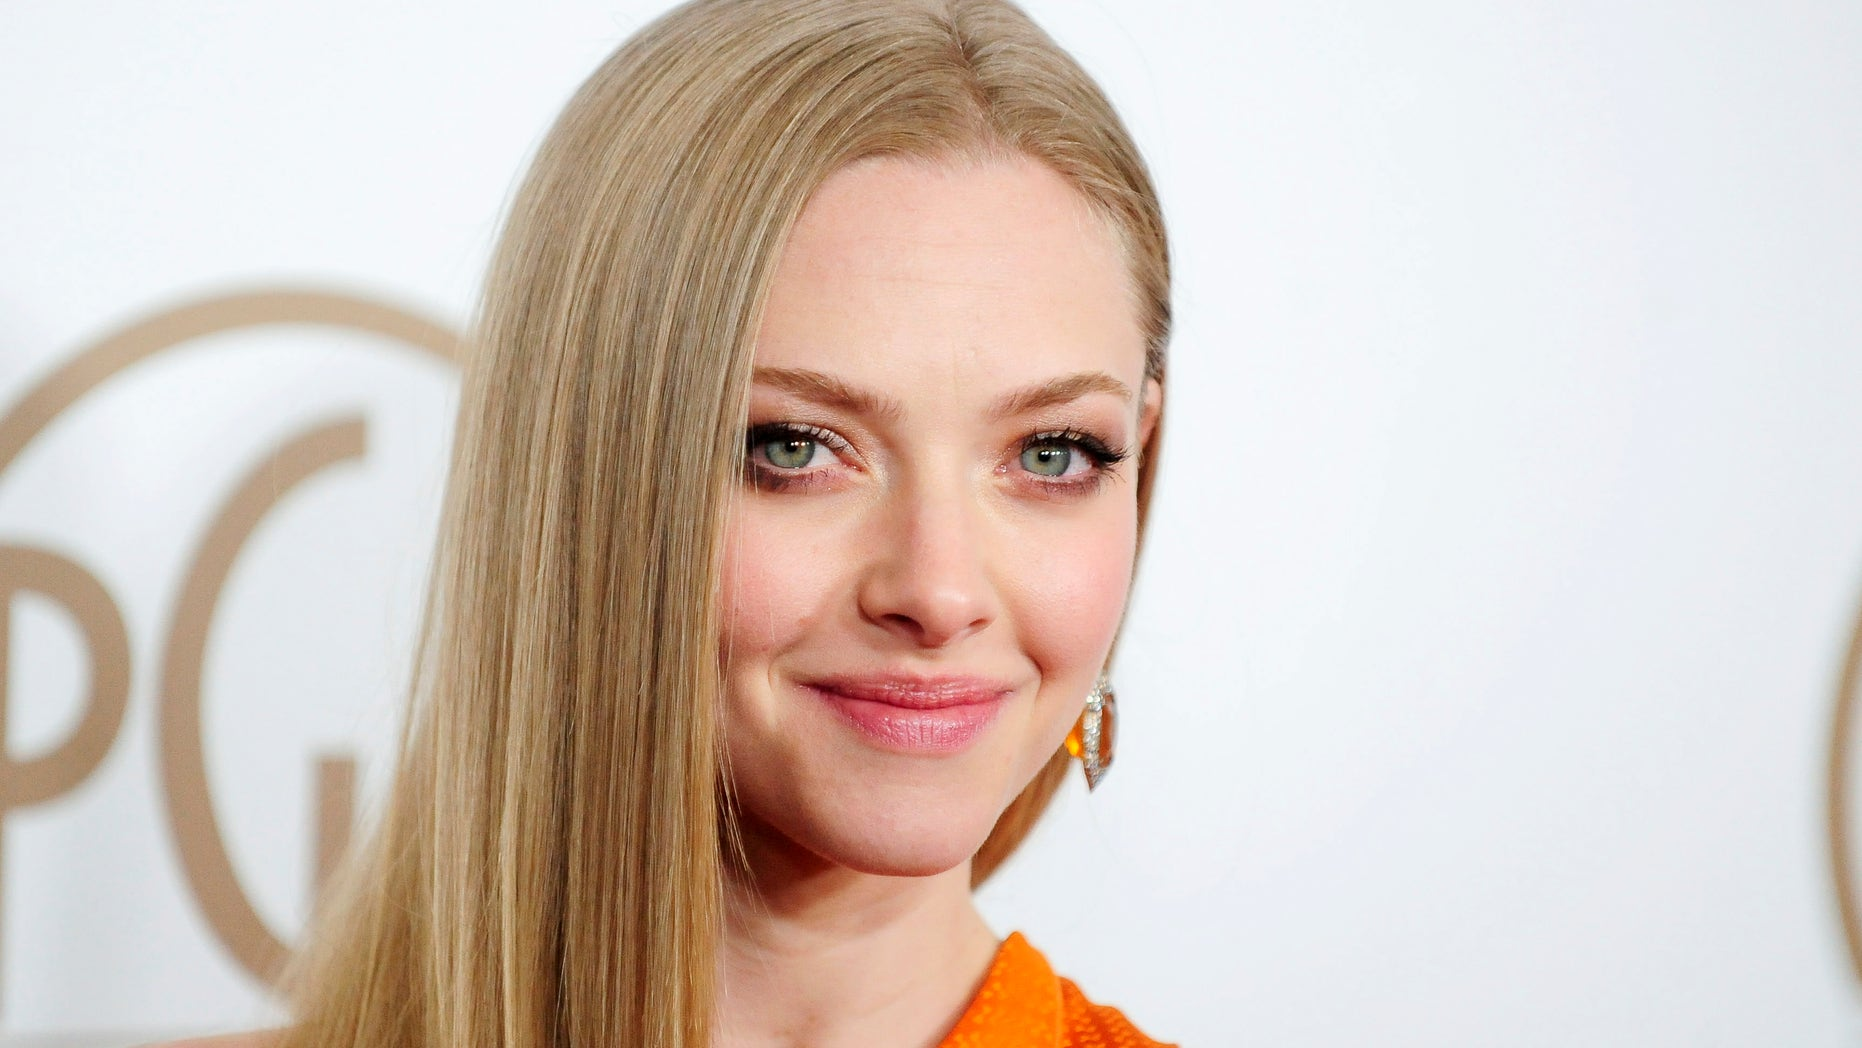 Amanda Seyfried Sex Pics amanda seyfried: 'sex scenes are great' | fox news